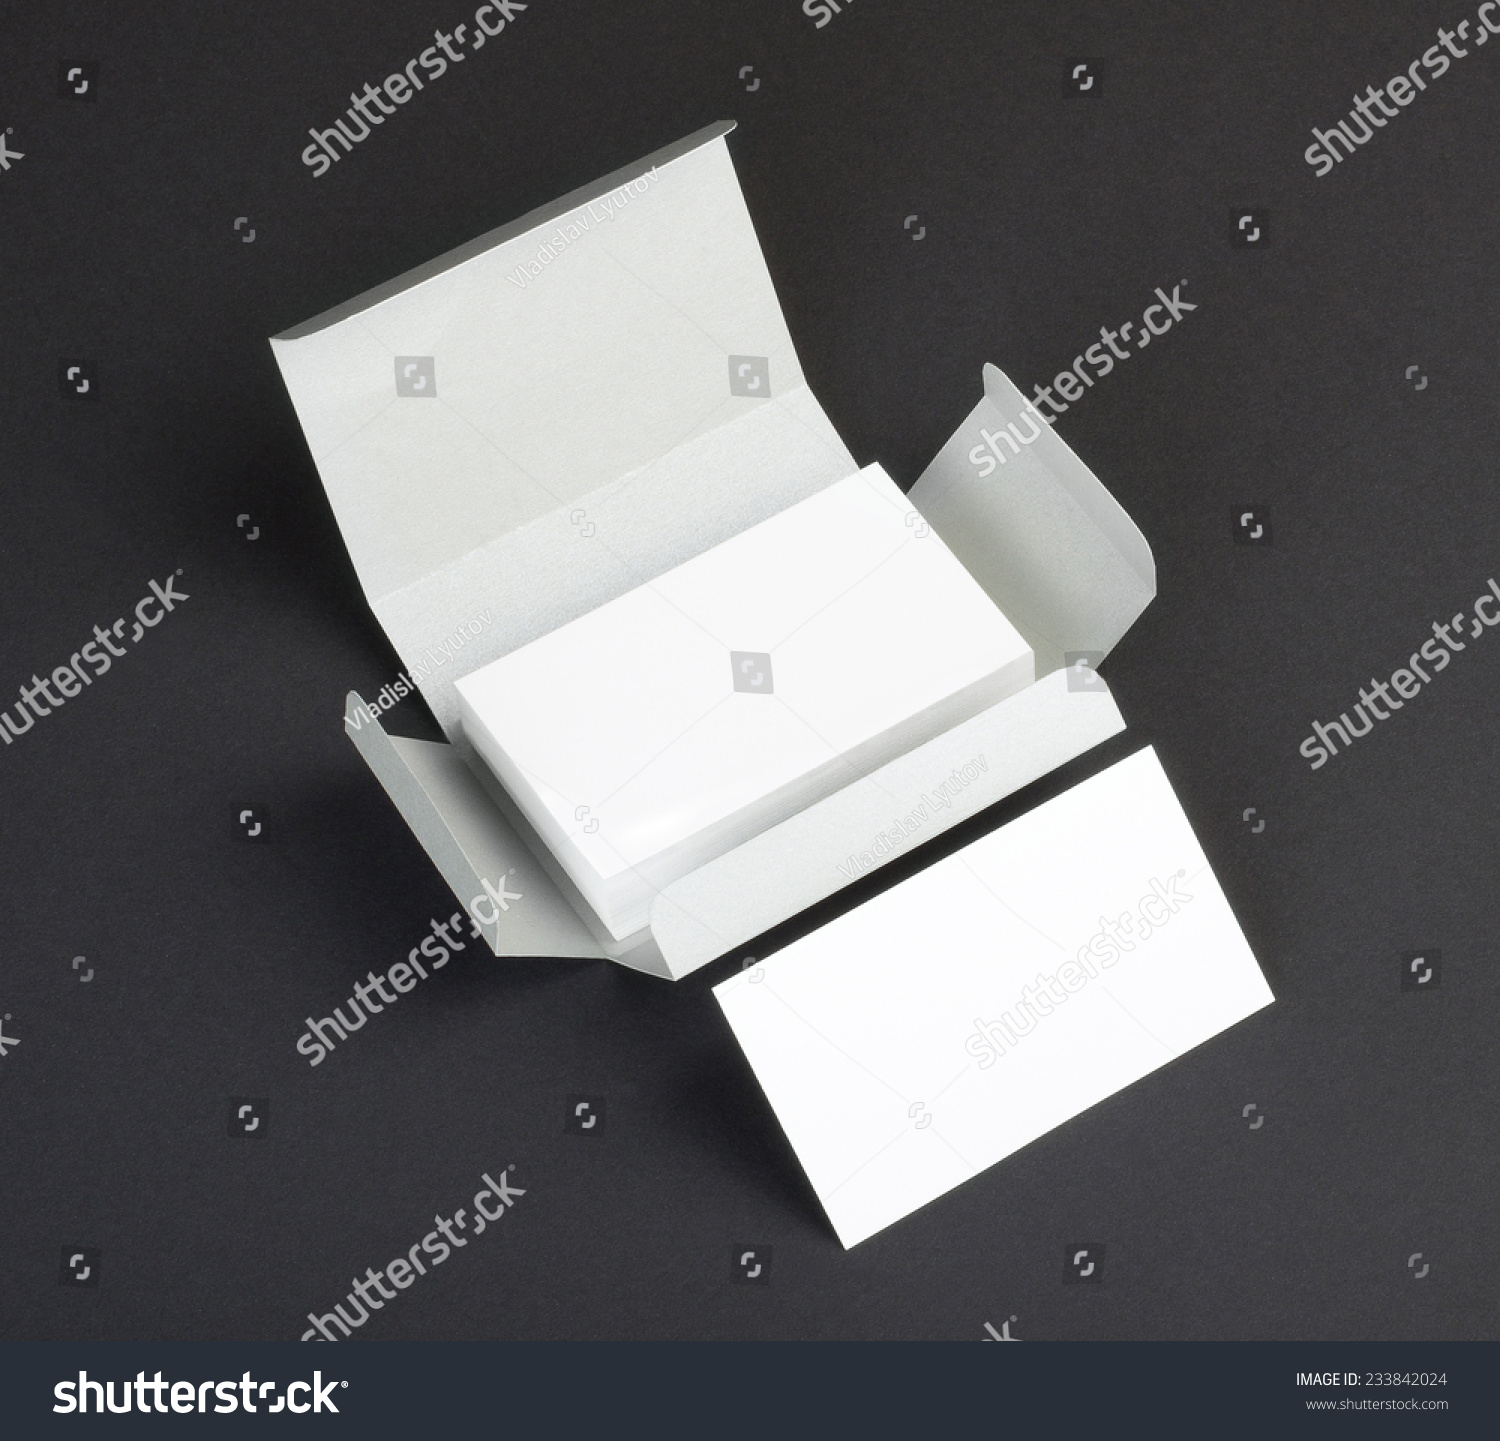 Blank business cards on gray background stock photo edit now blank business cards on a gray background reheart Gallery